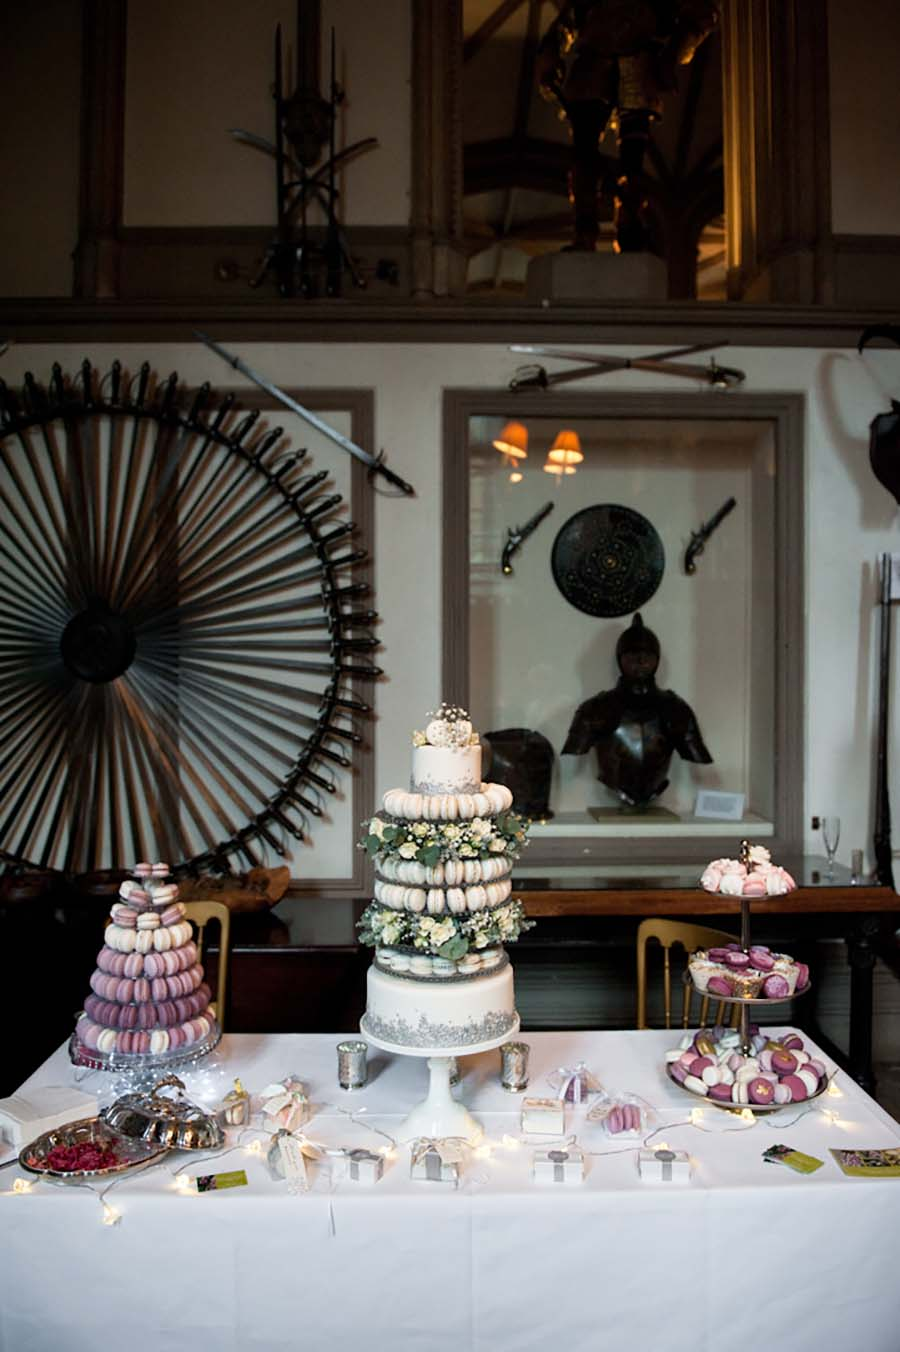 Buckinghams-at-belvoir-castle-wedding-fair-rachael-connerton-photography-72